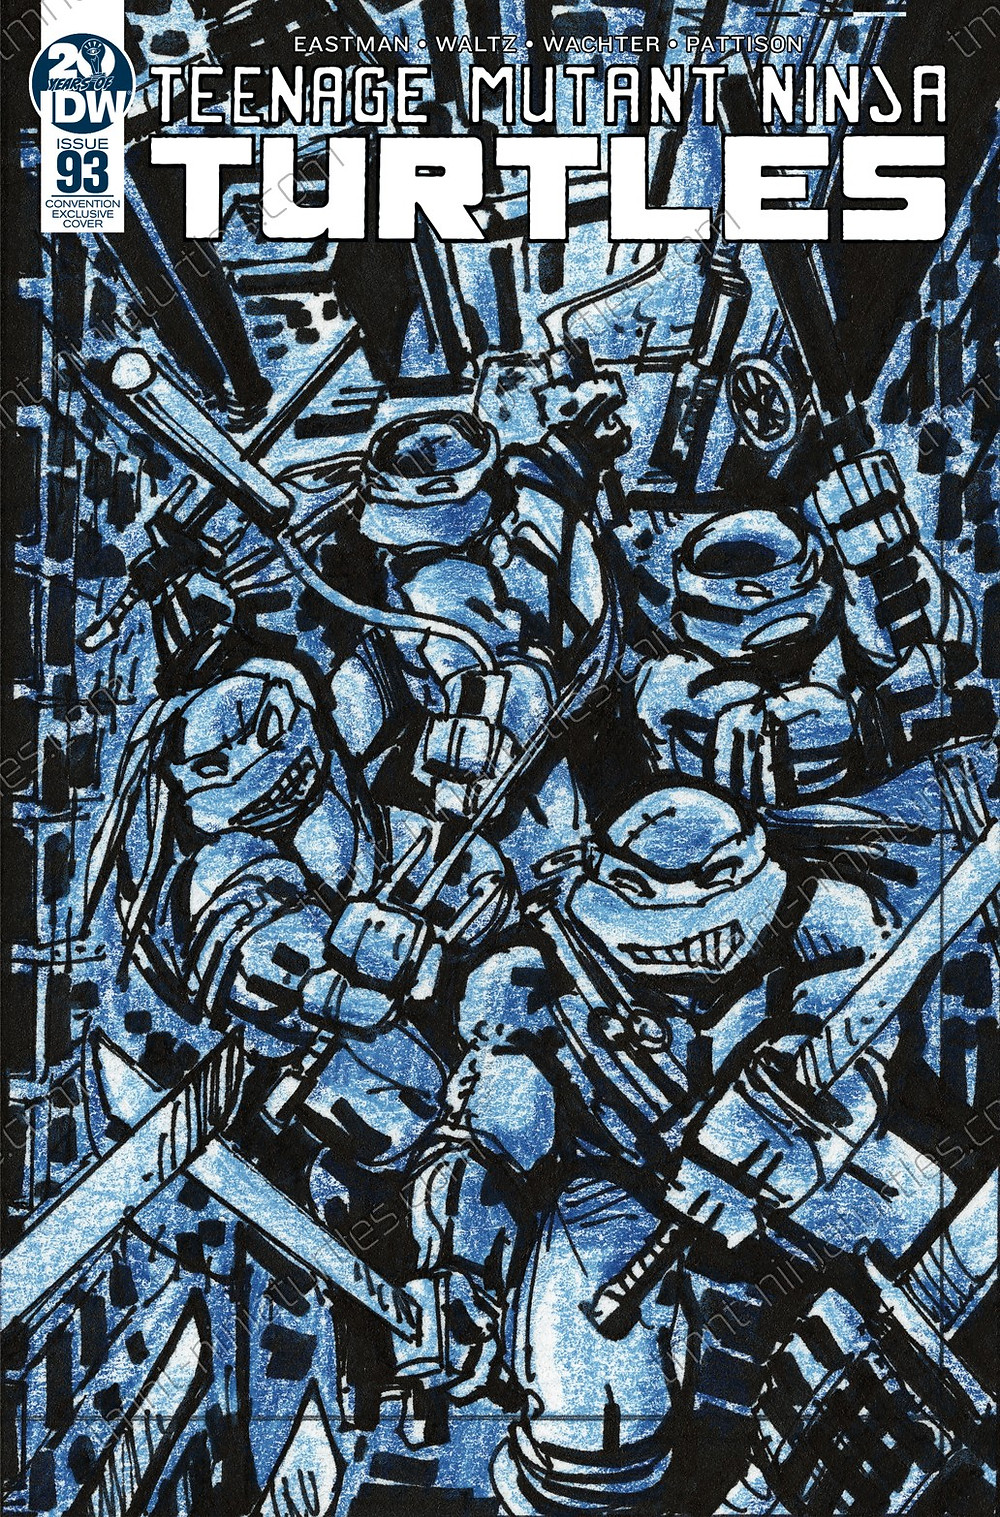 Kevin Eastman IDW convention exclusive